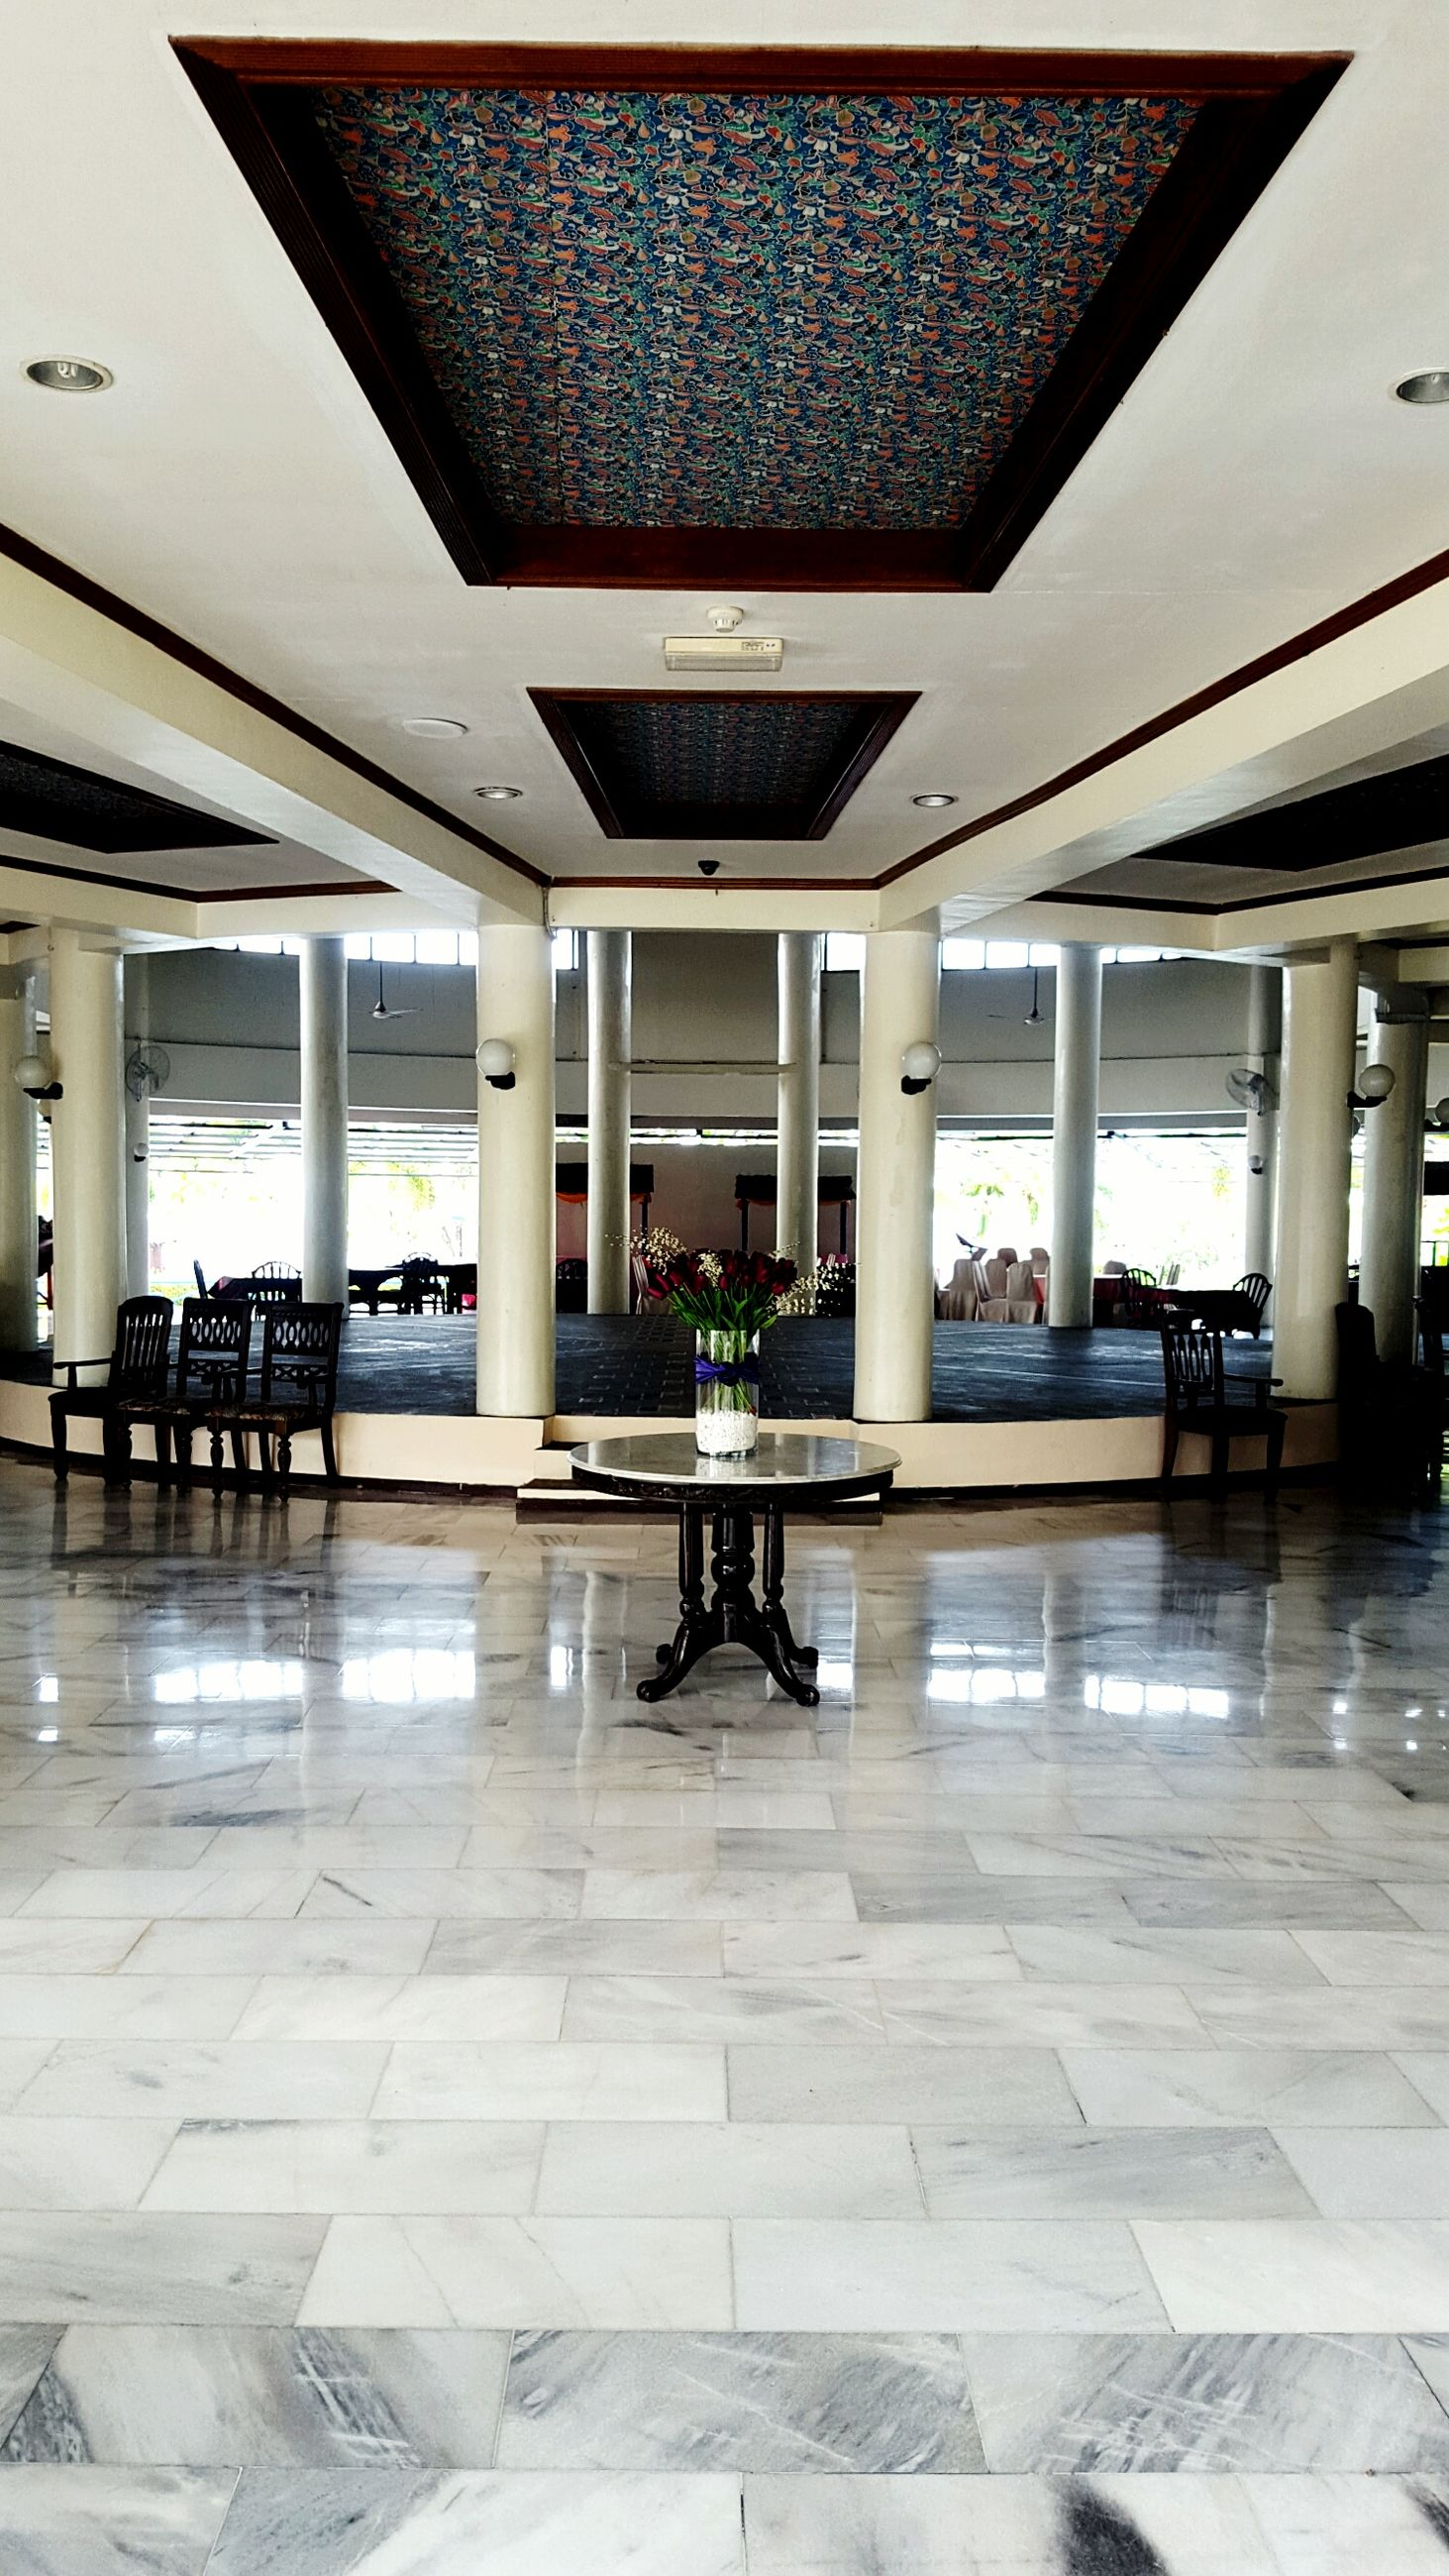 indoors, built structure, architecture, architectural column, flooring, ceiling, tiled floor, column, chair, person, incidental people, men, sunlight, restaurant, table, day, empty, travel, sitting